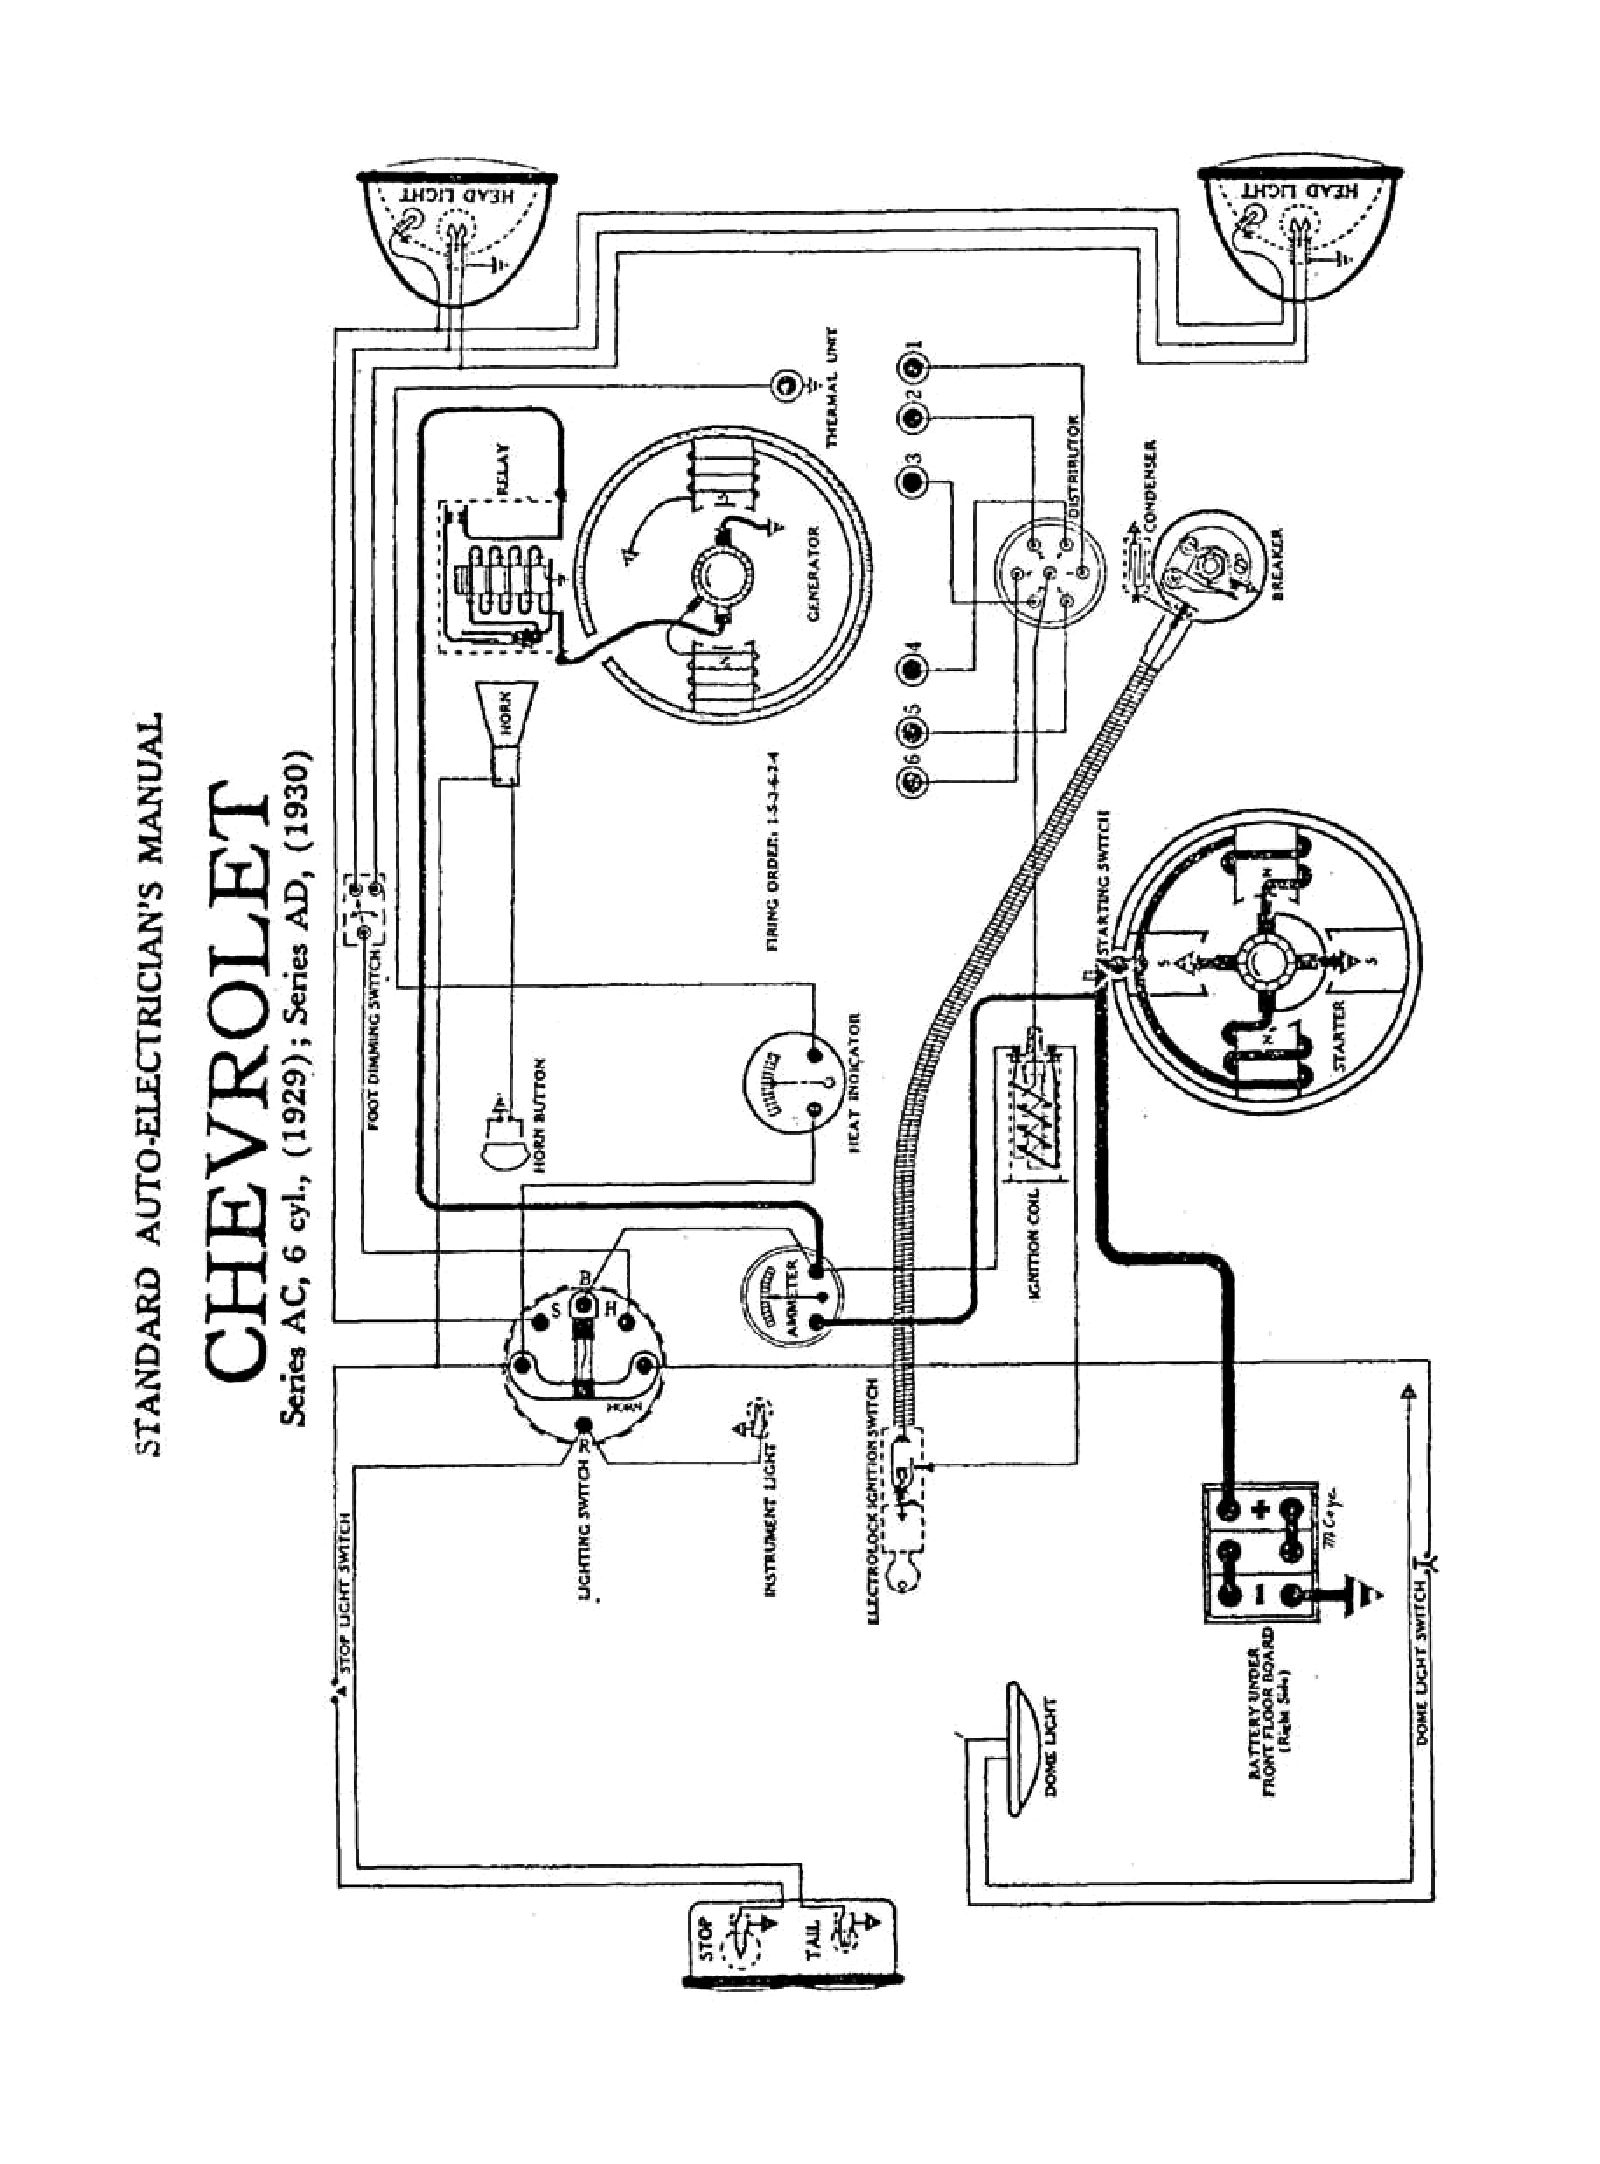 motorcraft distributor 12127 wiring diagram Collection-Ford 8n Distributor Diagram Elegant 1950 ford Wiring Schematic Free Wiring Diagrams Schematics 6-o